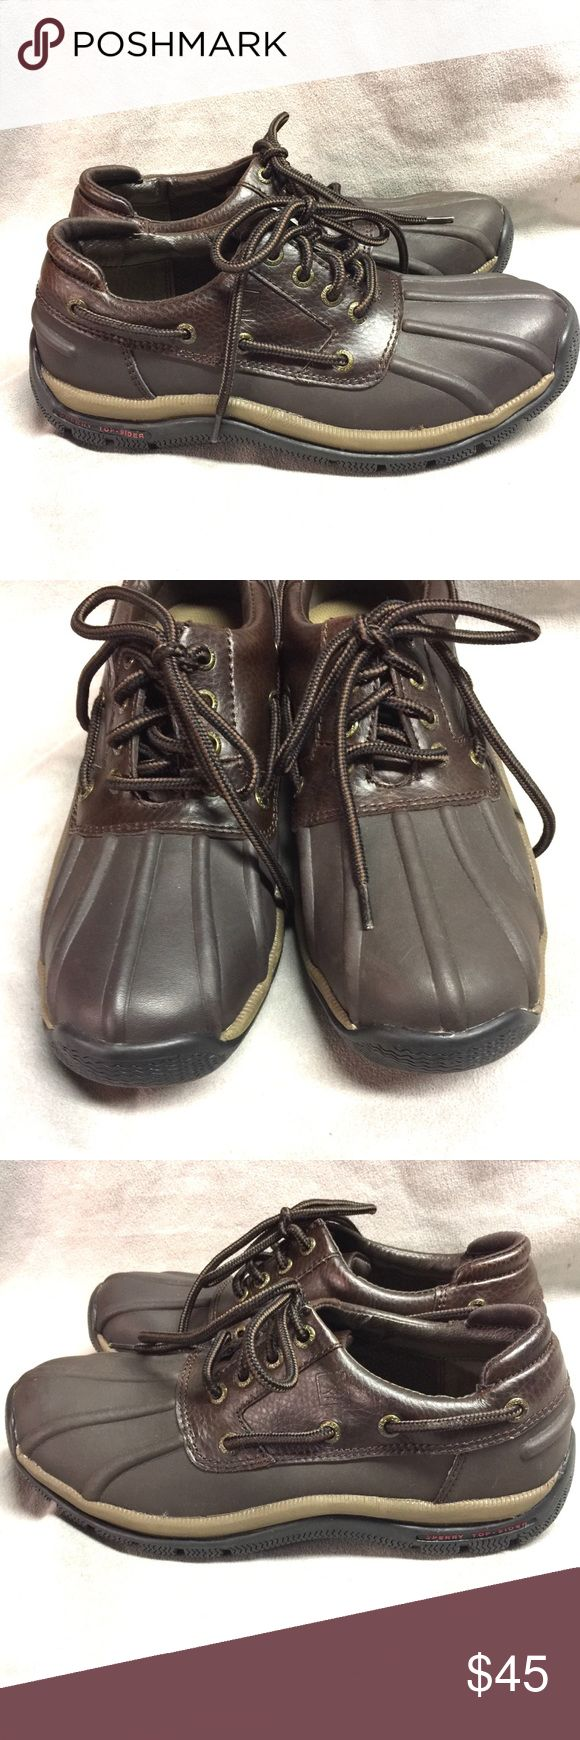 Sperry Top-Sider Low Duck Boots Mens Size 7.5M Sperry Top-Sider Low Duck Boots Mens Size 7.5M Brown Leather & Rubber  Very good condition Please see pictures to see if they will work for you! Sperry Top-Sider Shoes Rain & Snow Boots